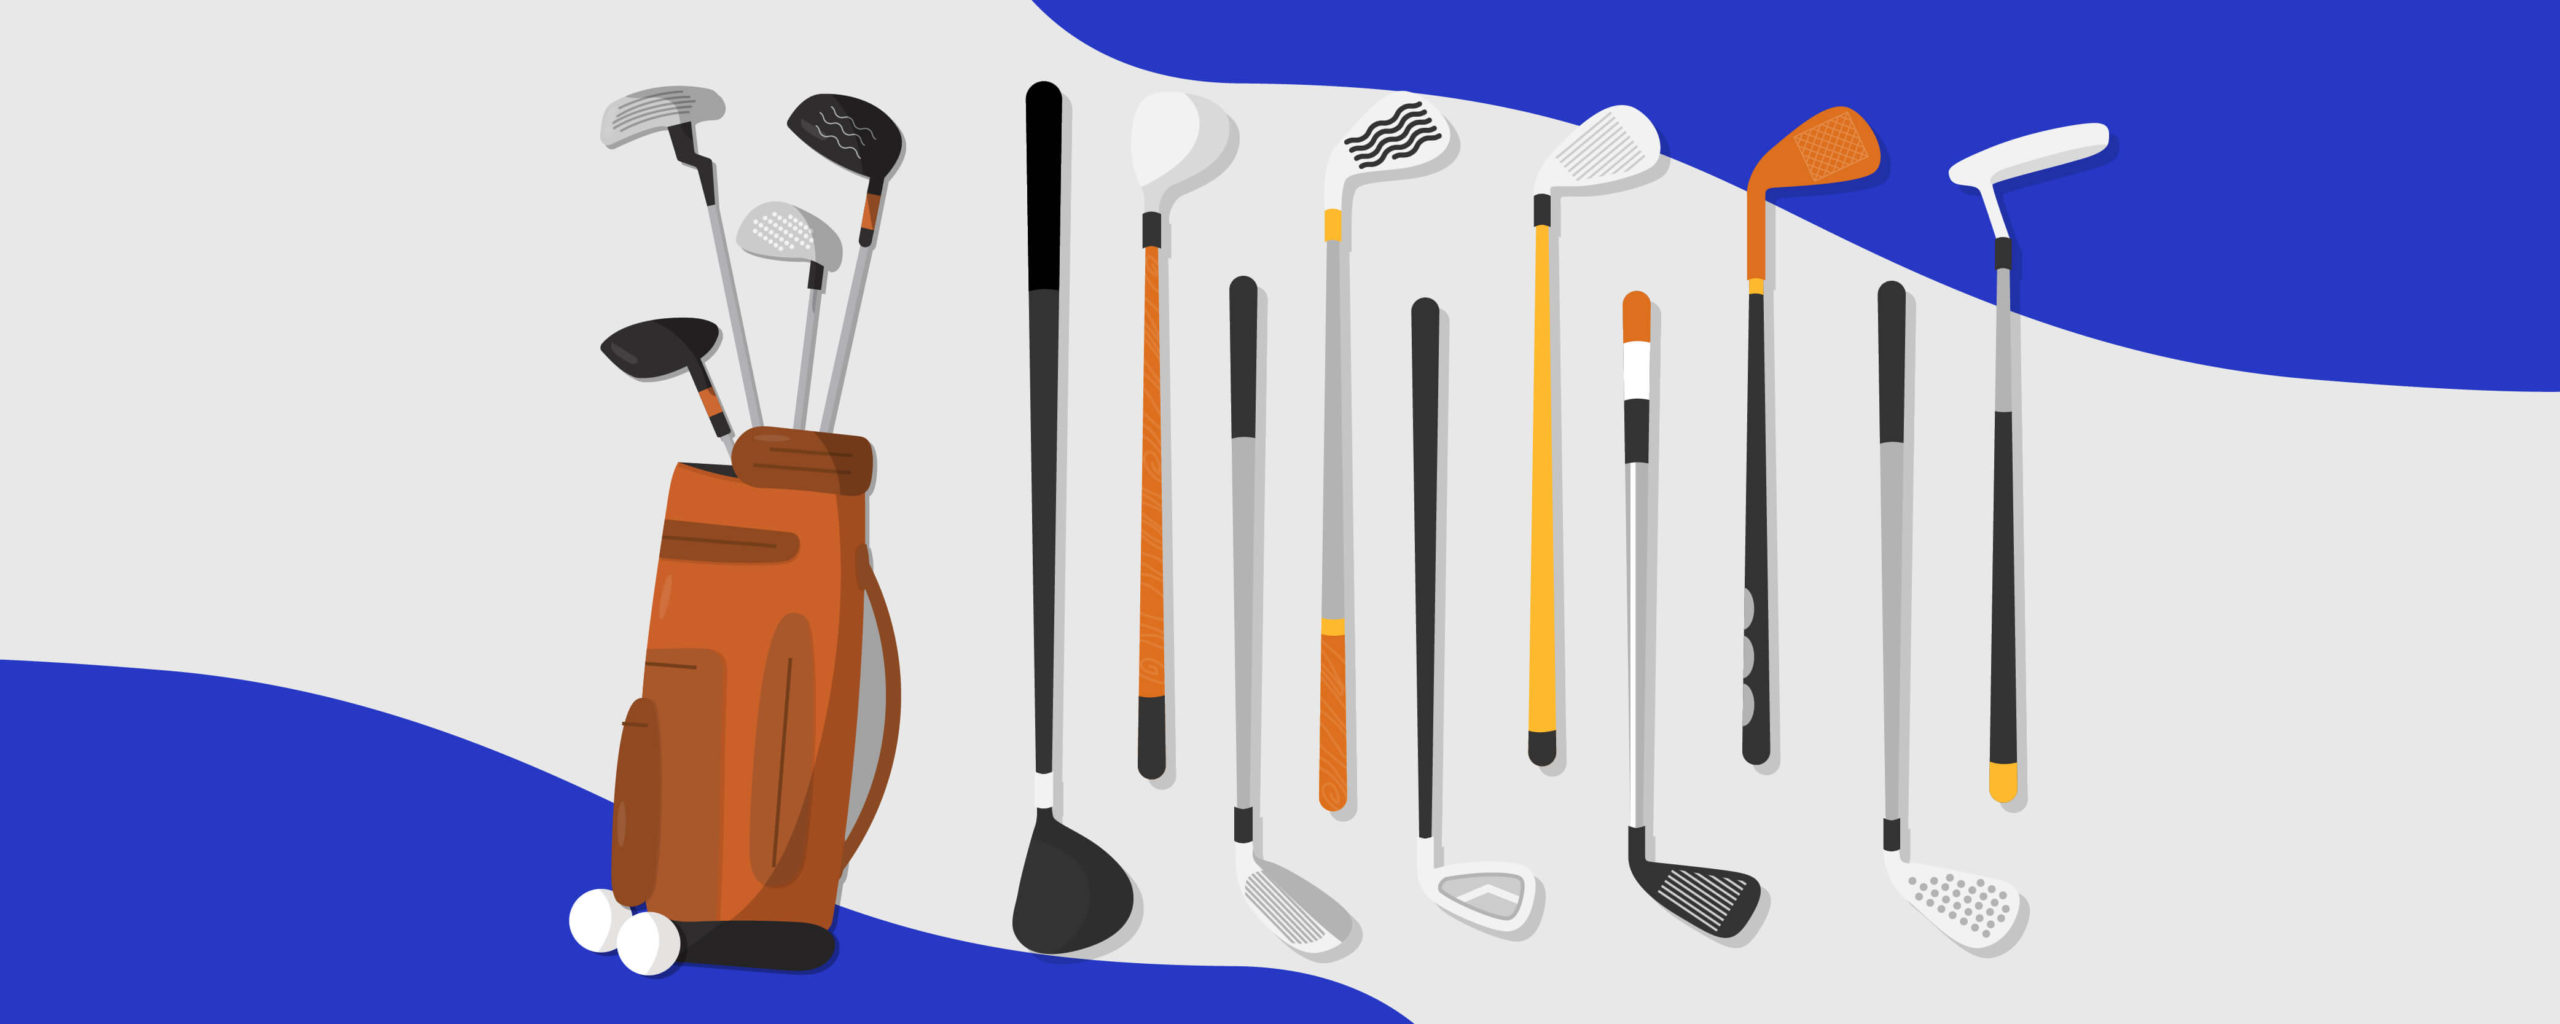 A bag of golf clubs and two golf balls next to it